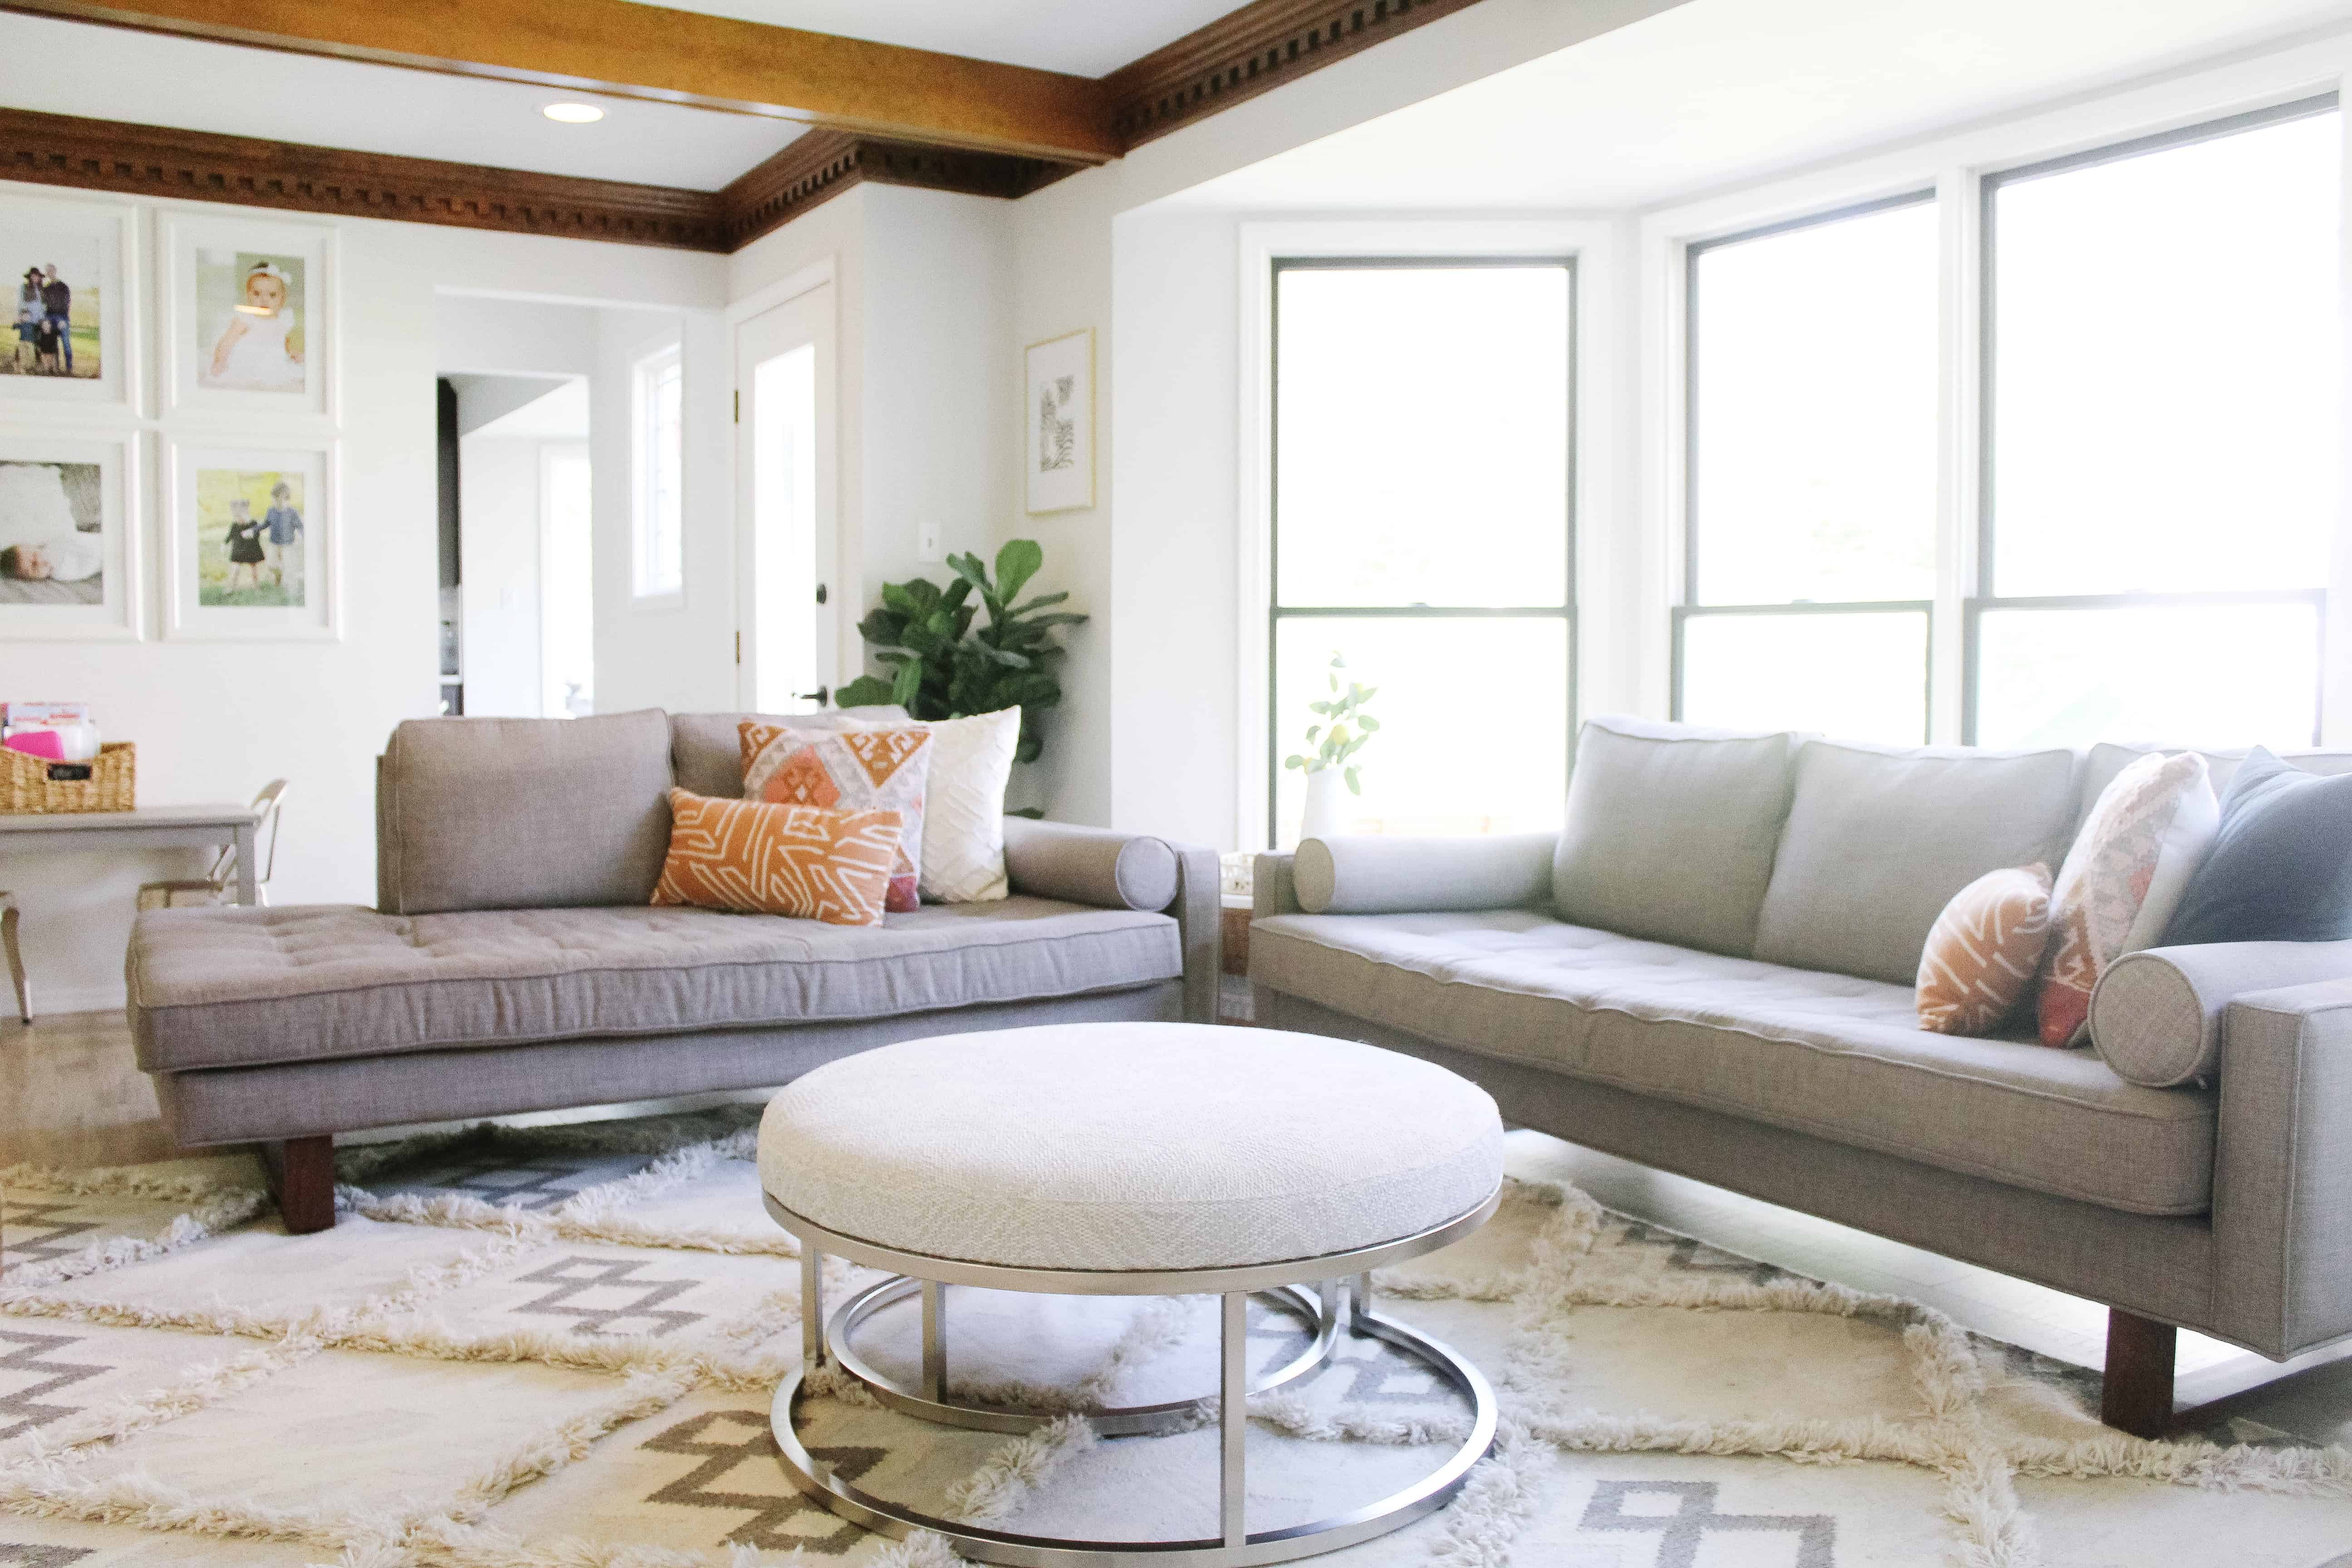 a view of a living room with midcentury modern grey couches